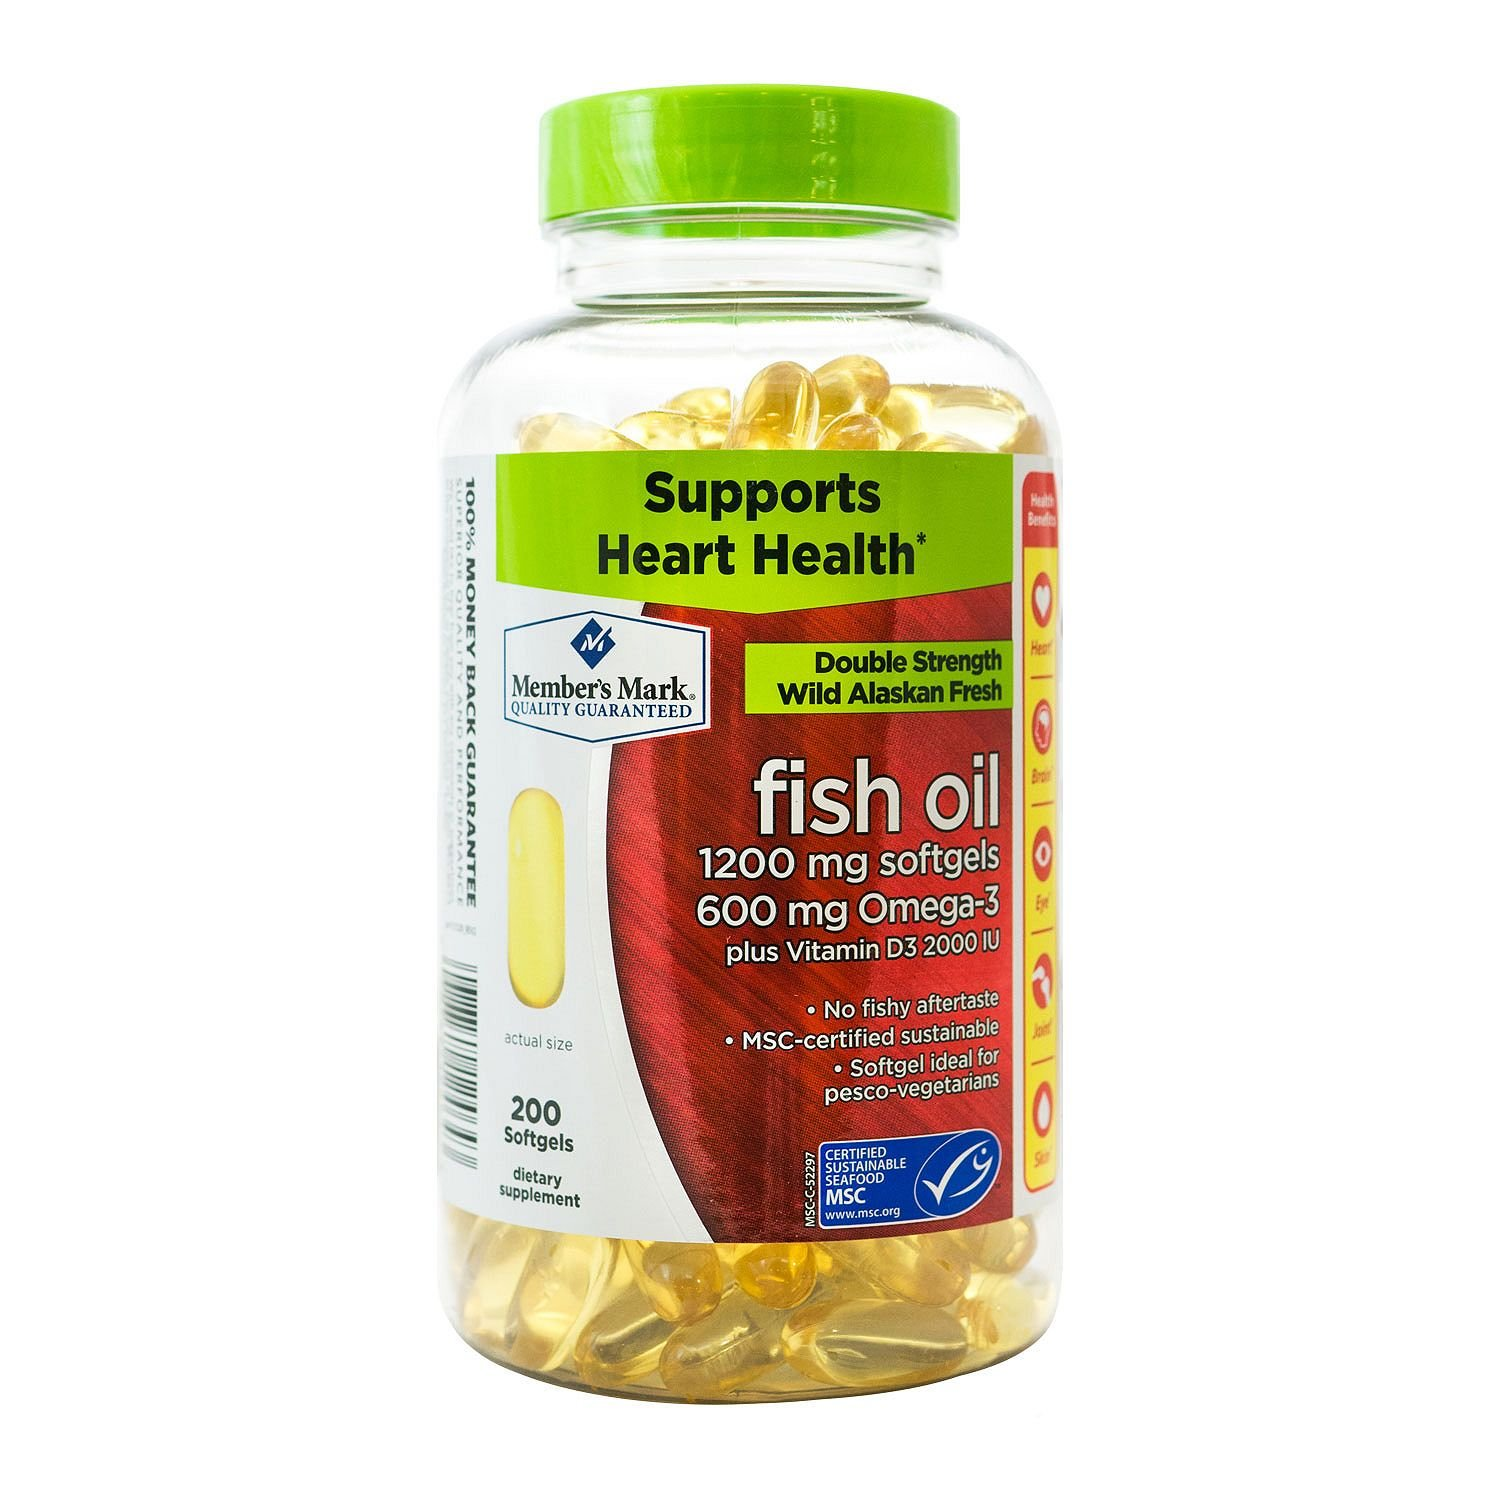 Member's Mark 1200mg Double Strength Wild Alaskan Fresh Fish Oil (200 ct.) (pack of 6)